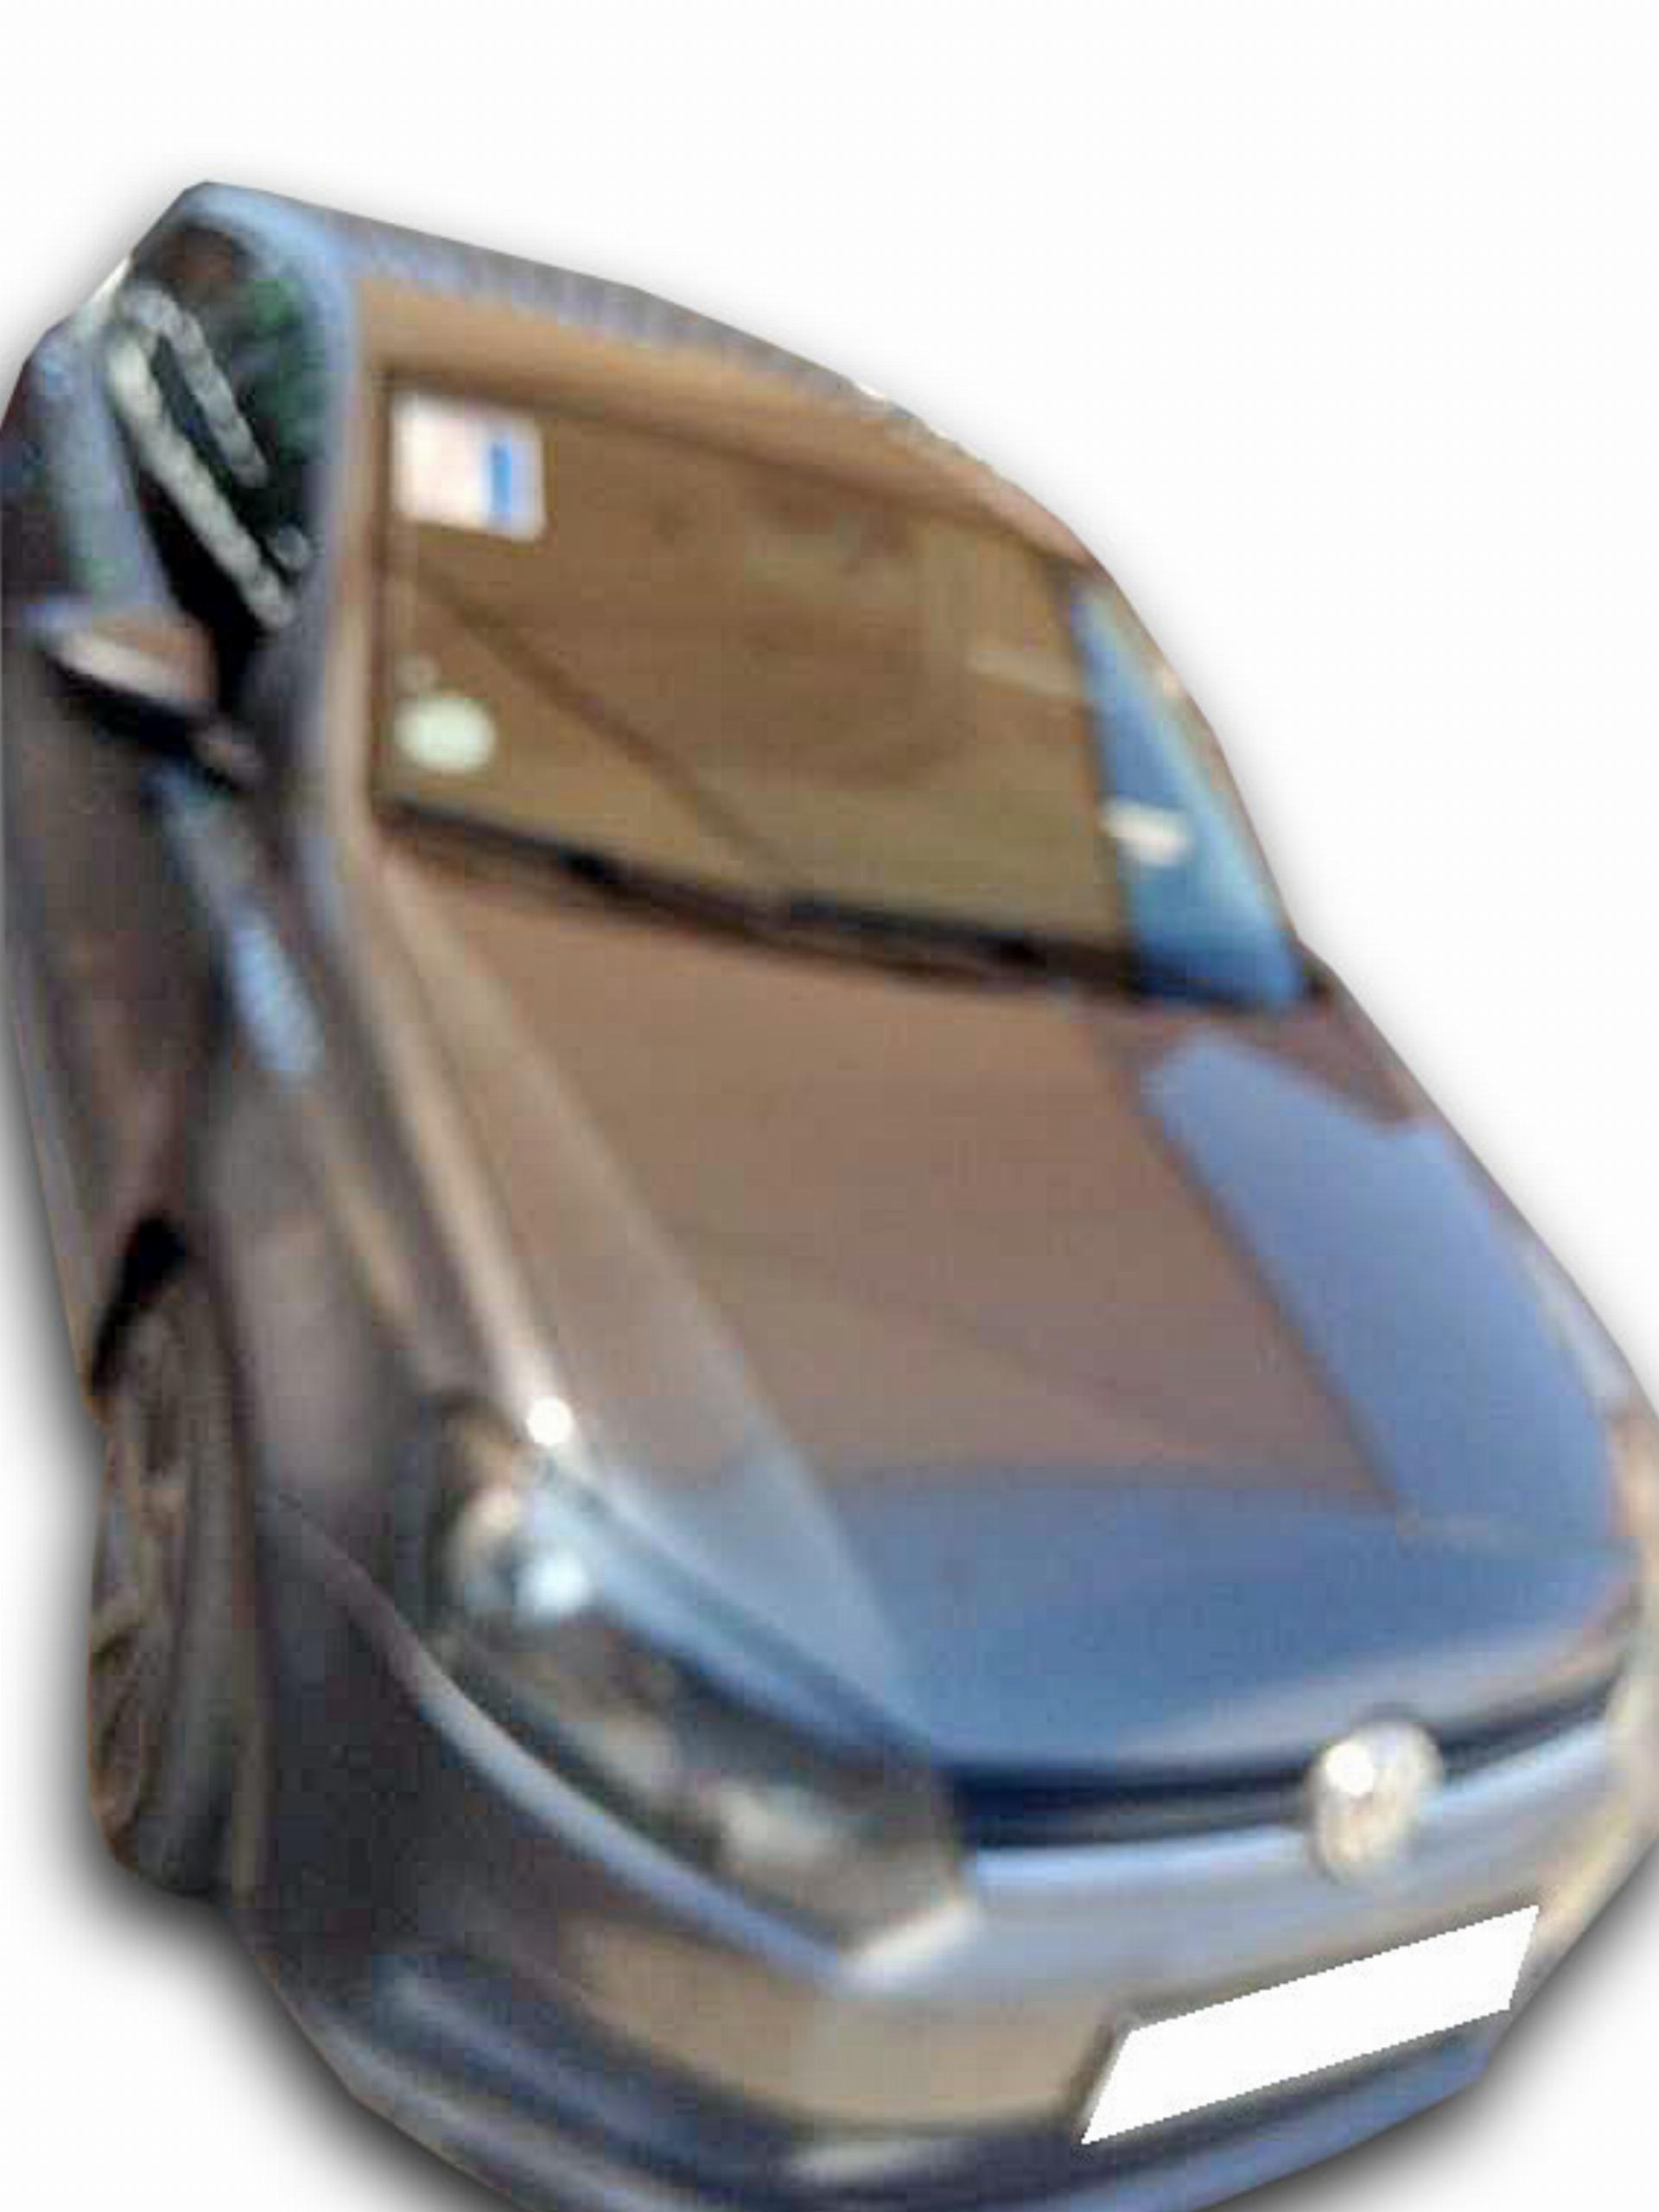 VW Polo GP 1.2 Tsi